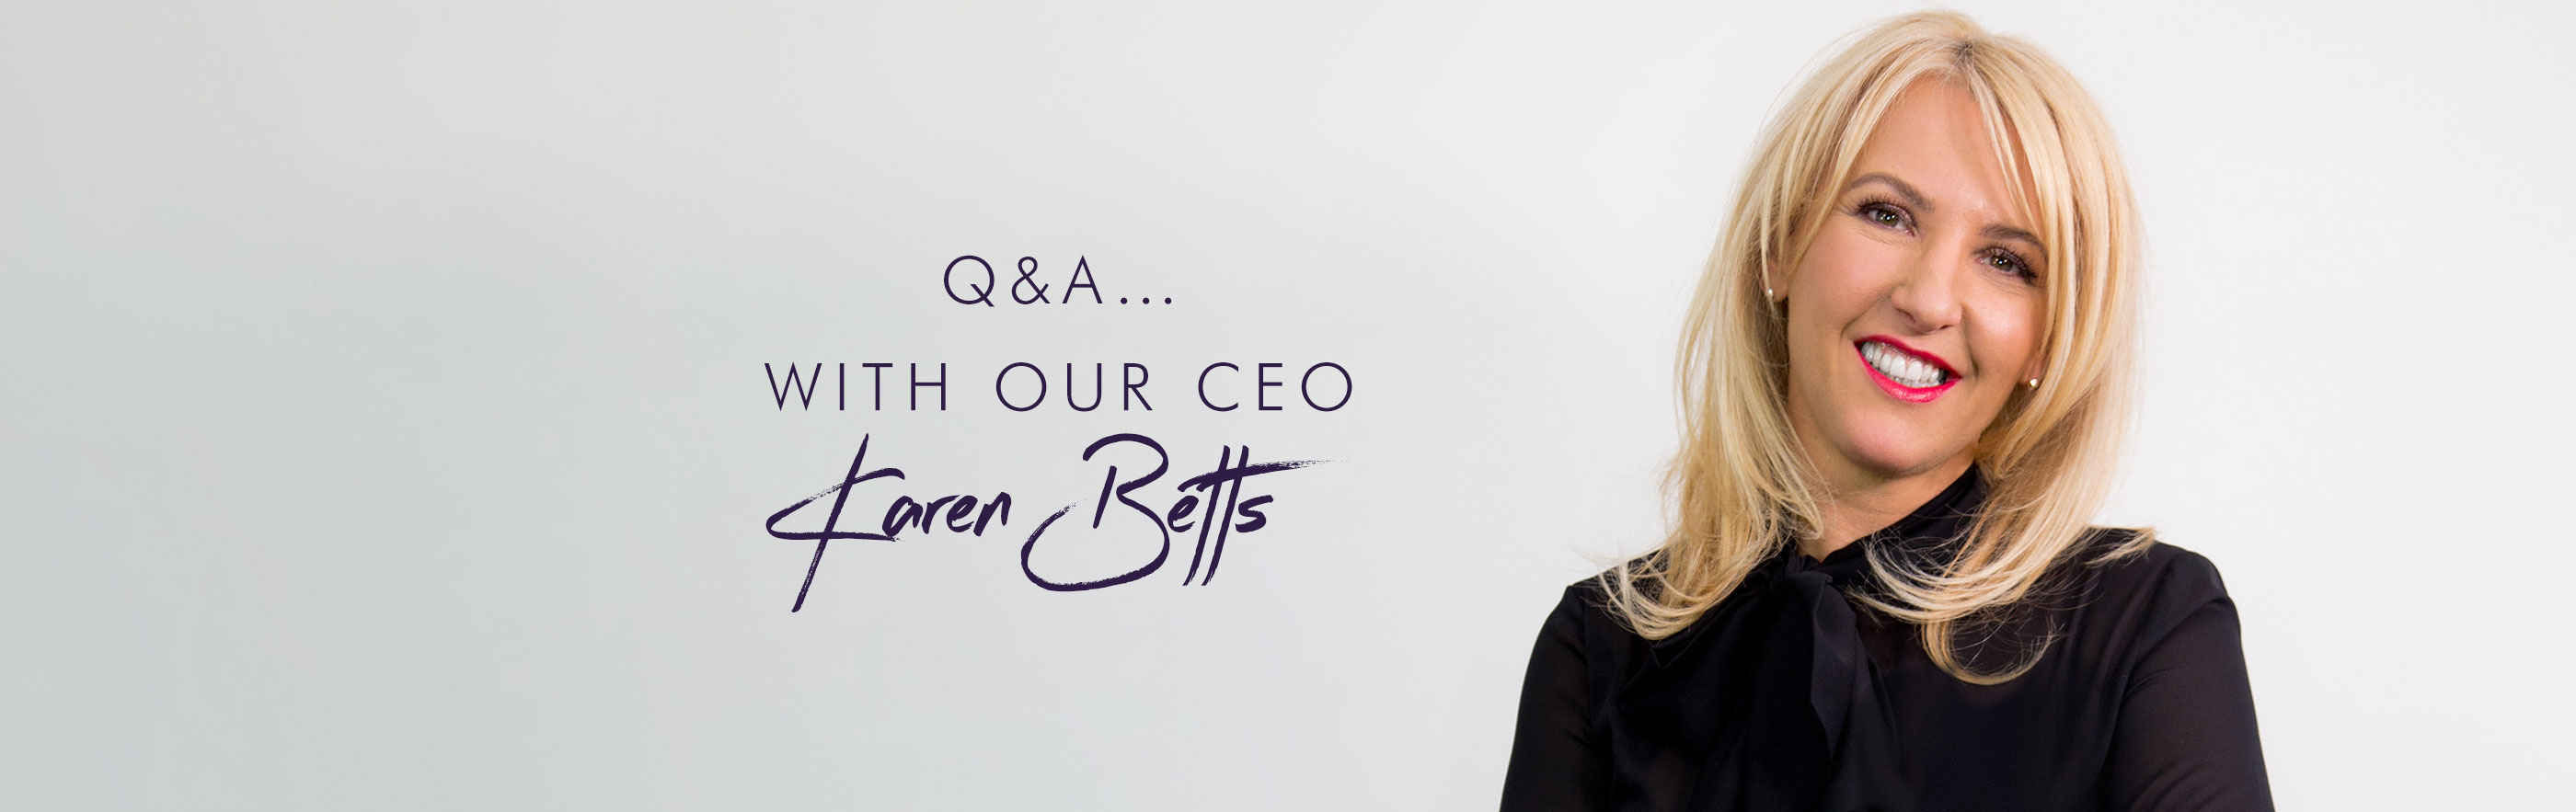 A Q&A… with our CEO Karen Betts!